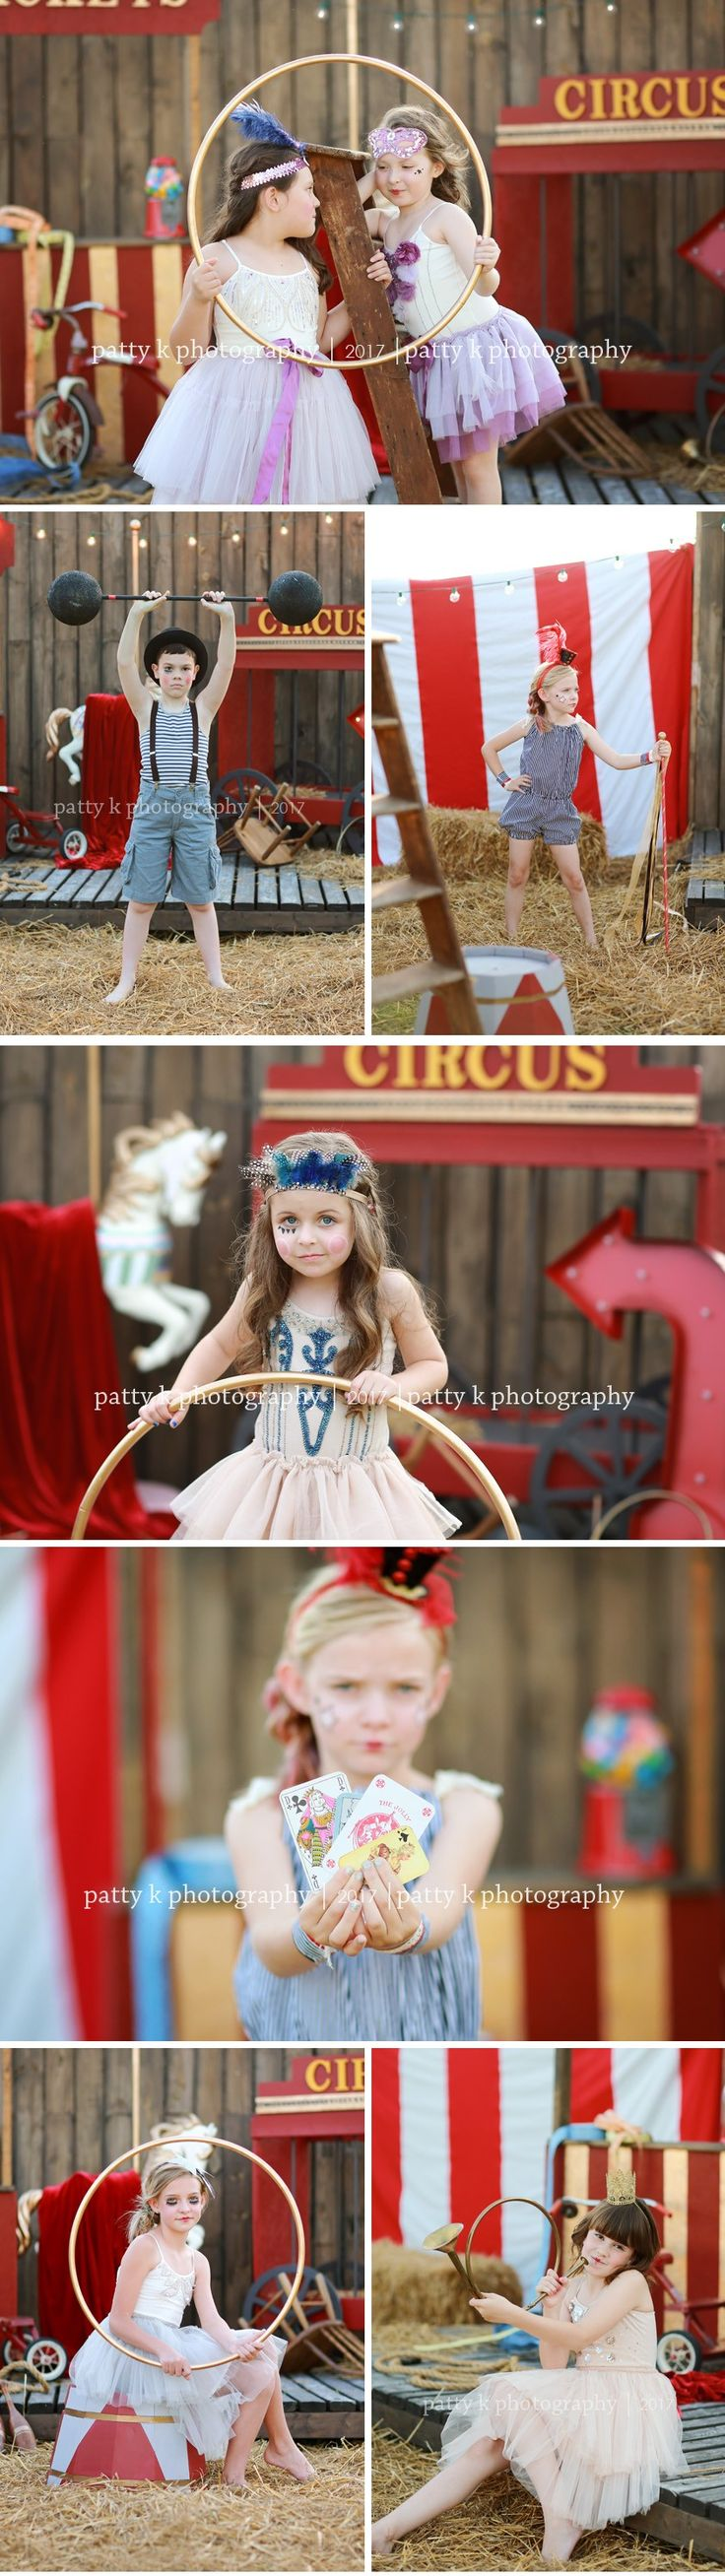 Circus Sessions | Greensboro, NC Photographer | Patty K Photography